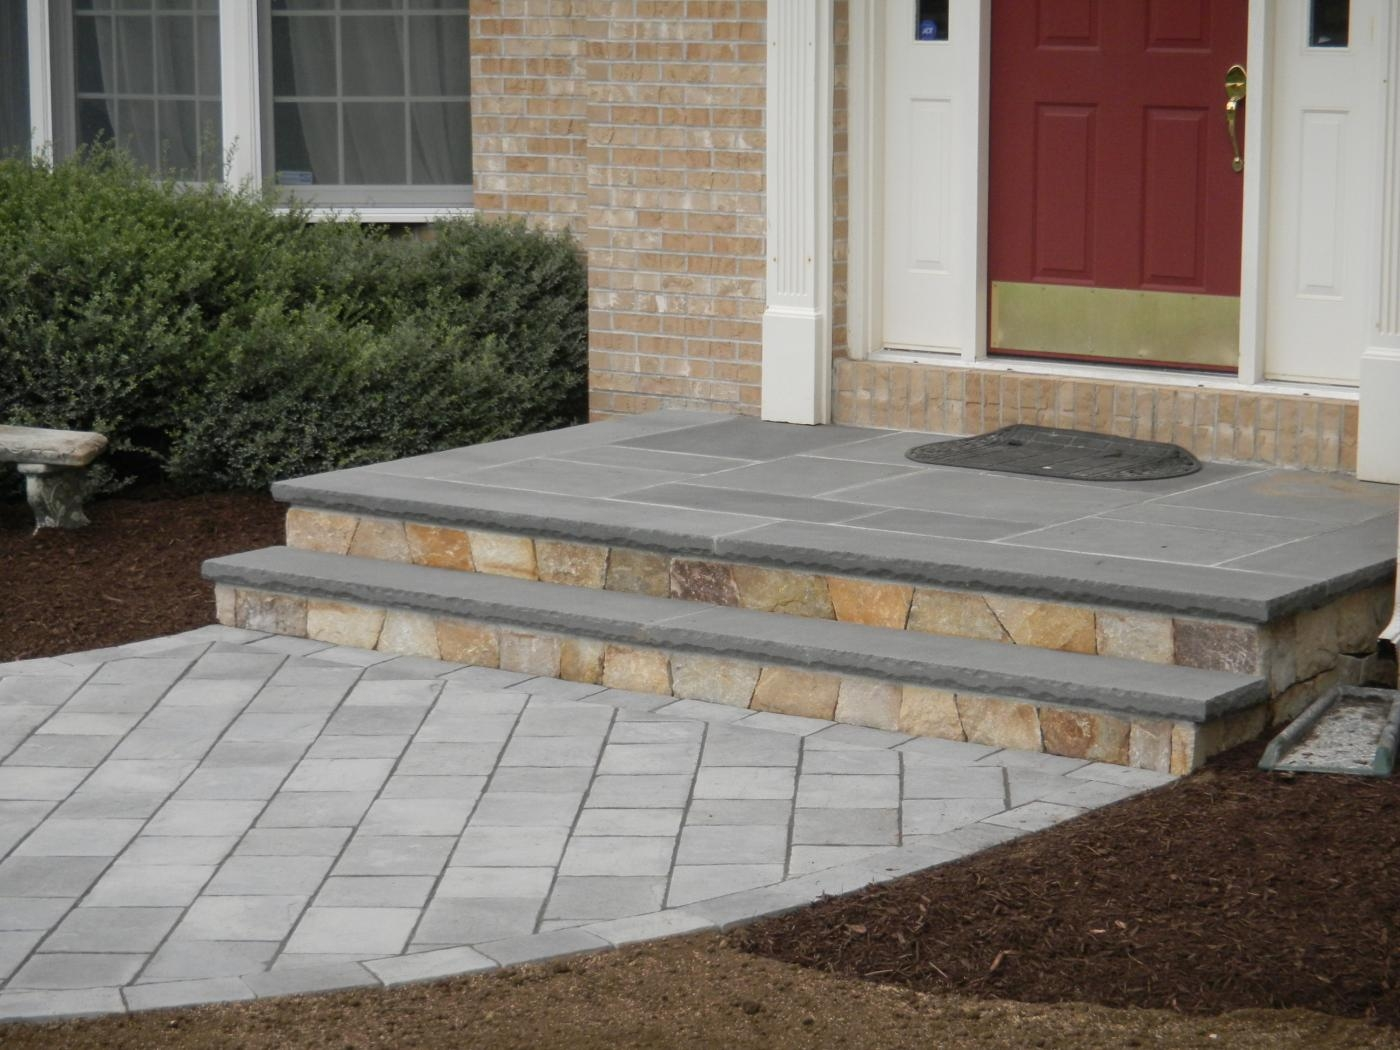 Landscape and masonry contractor trac landscaping in for Blue stone